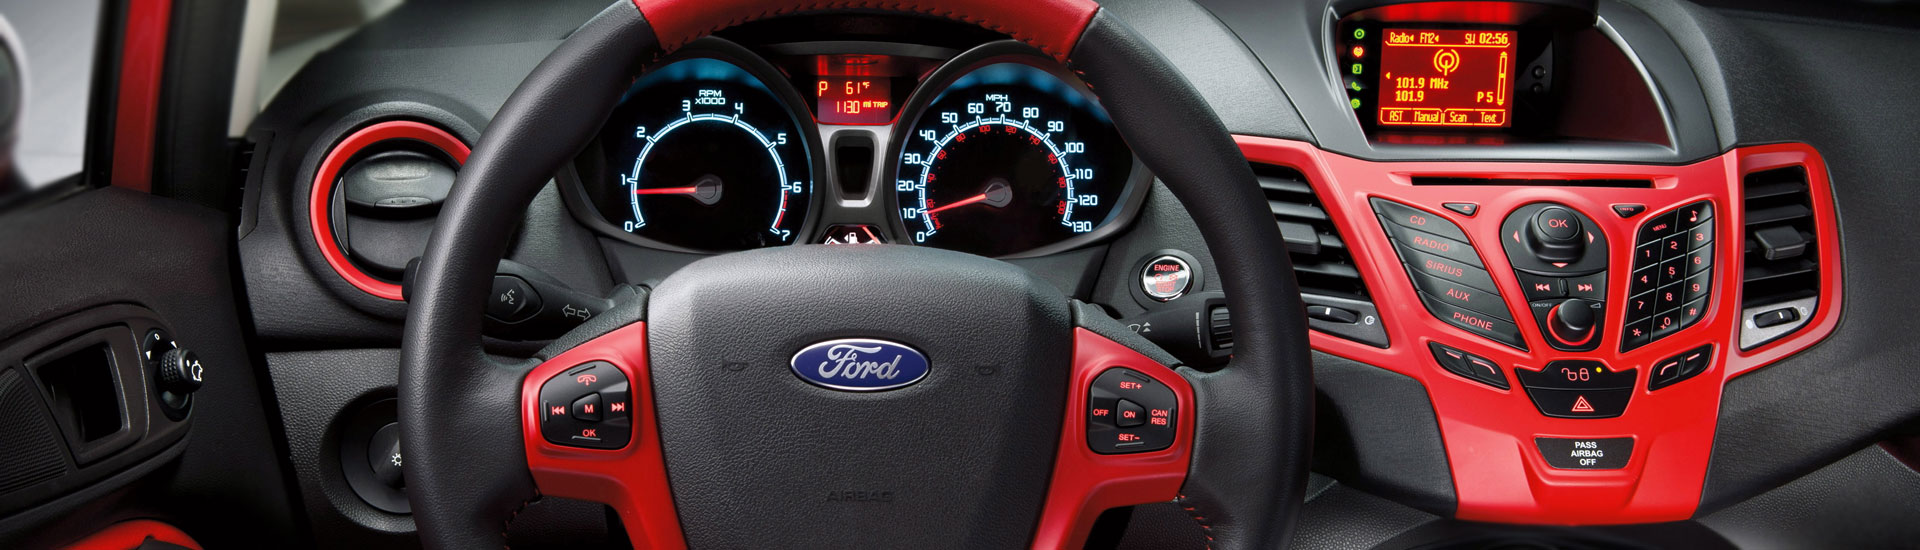 2018 Ford Fiesta Custom Dash Kits